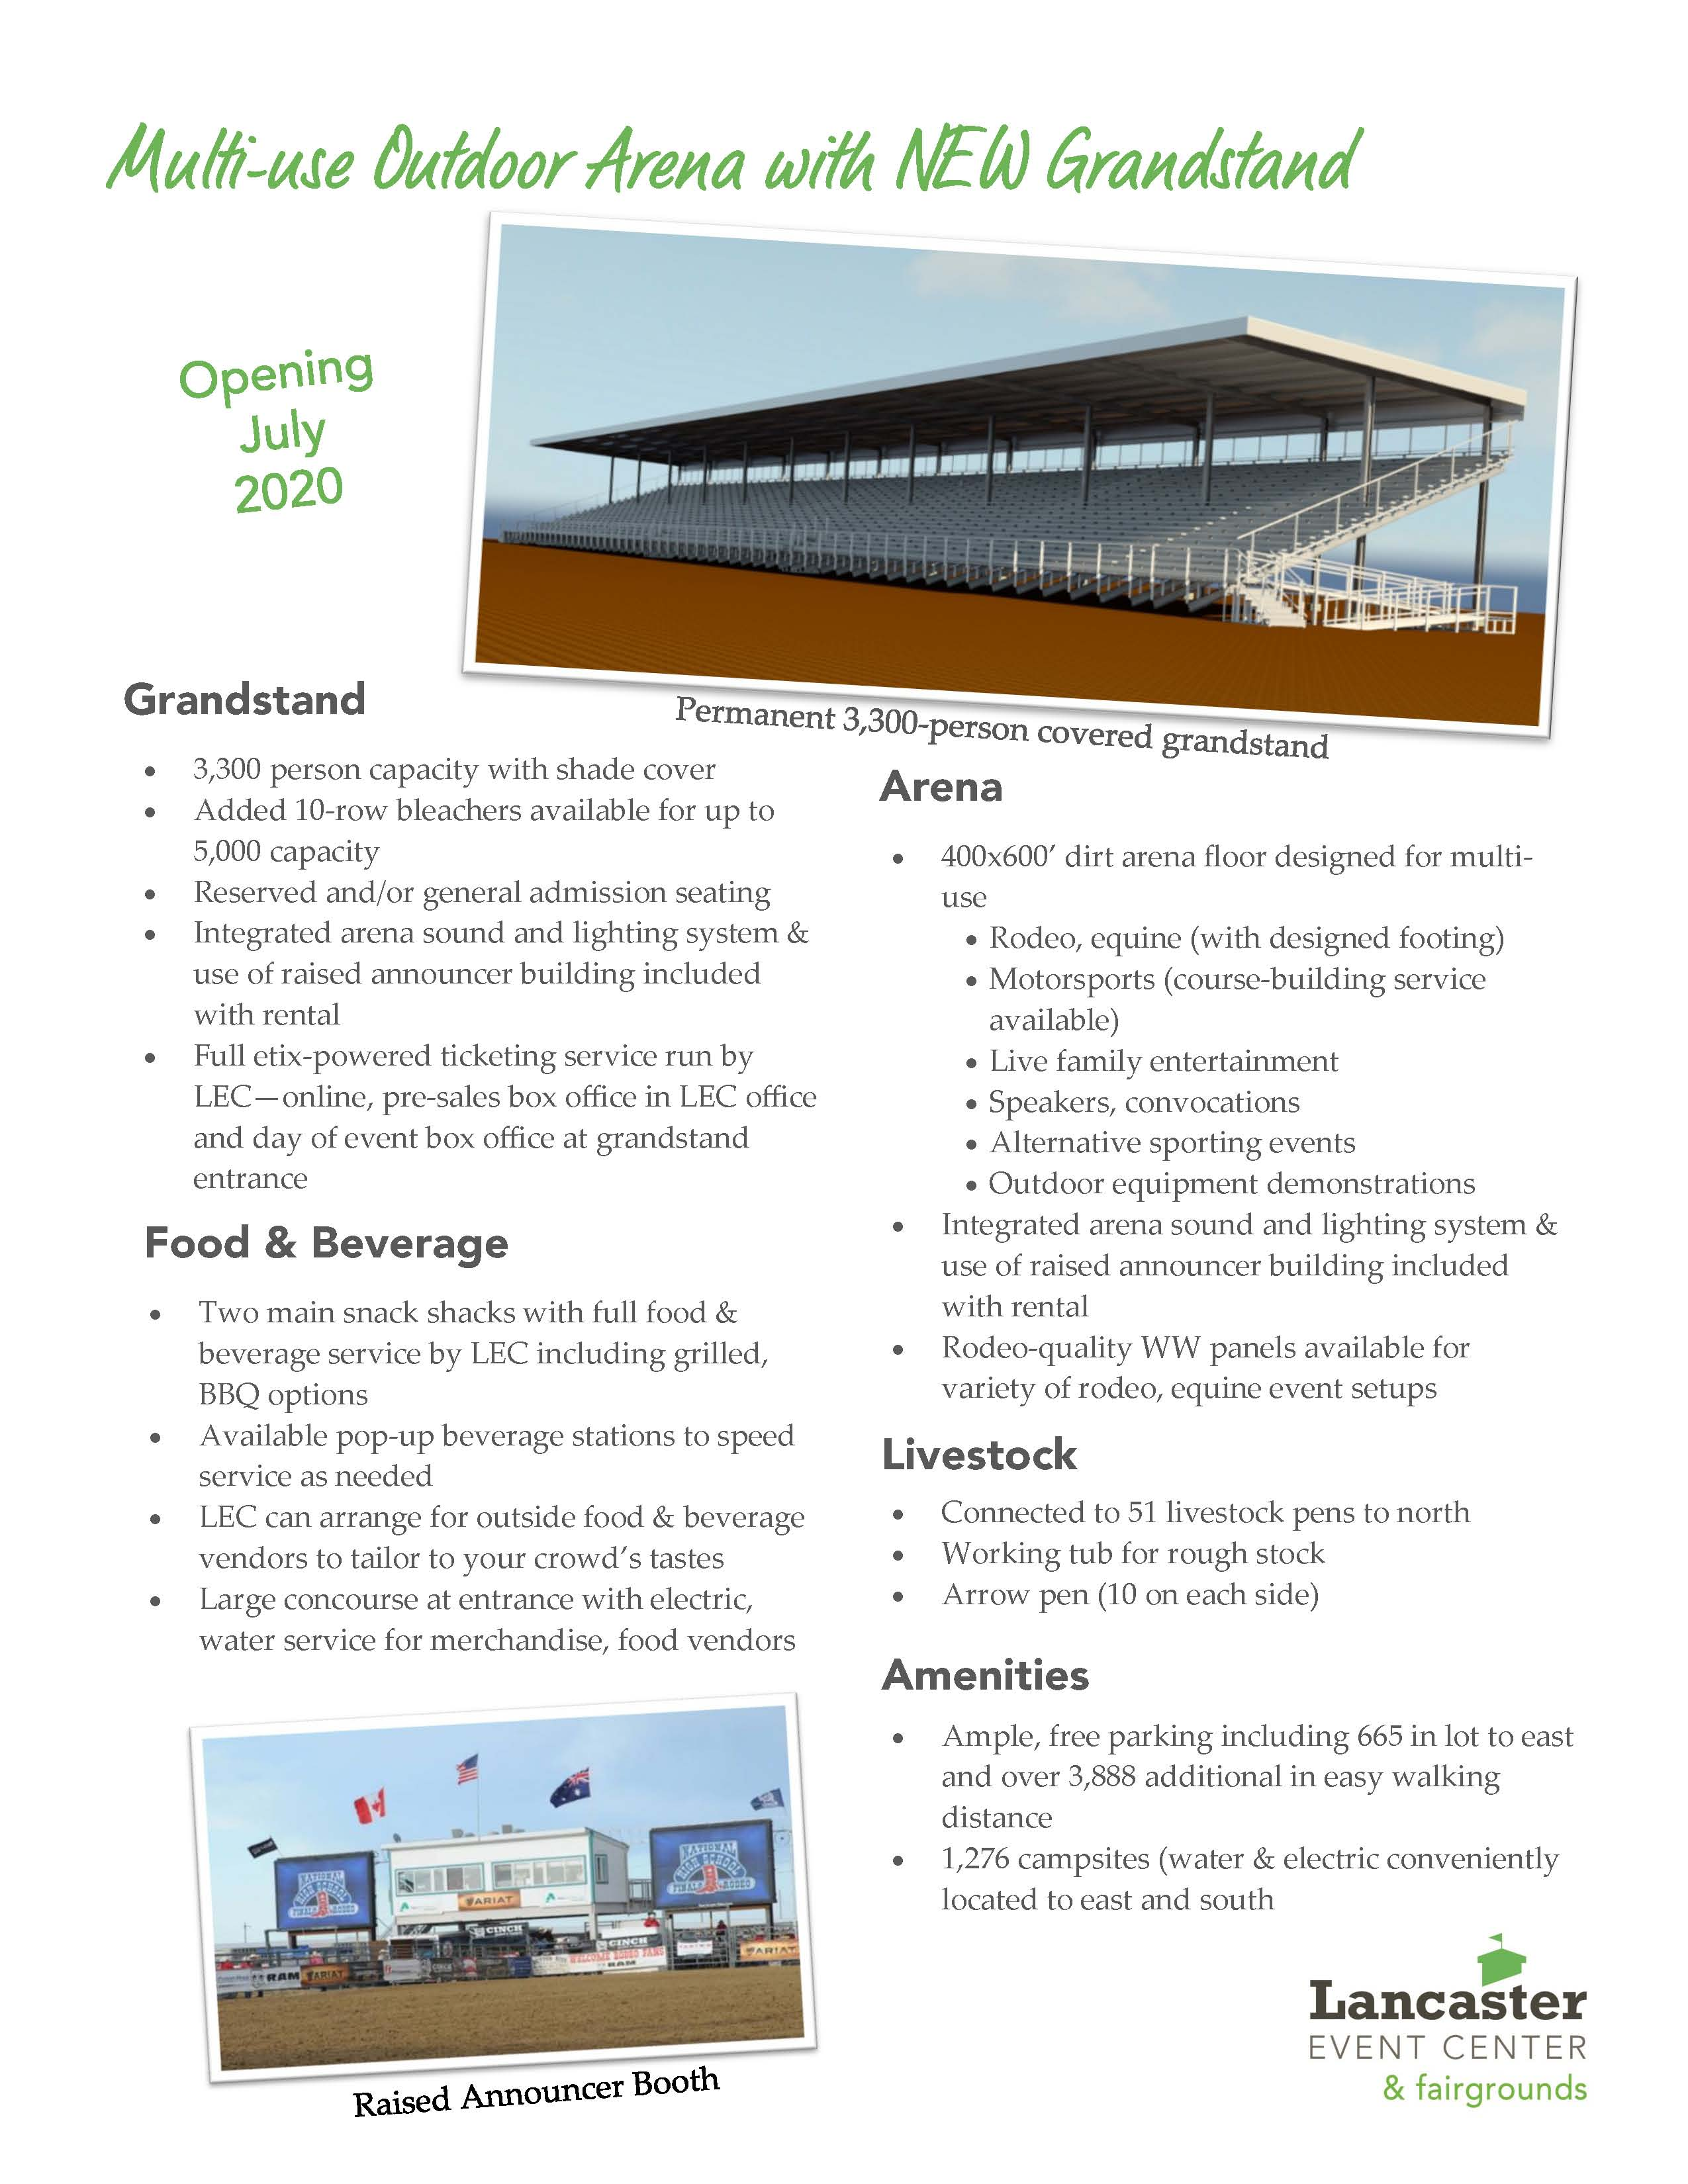 Grandstand Page from Where Your Event Belongs Single Page Insert ts 112119